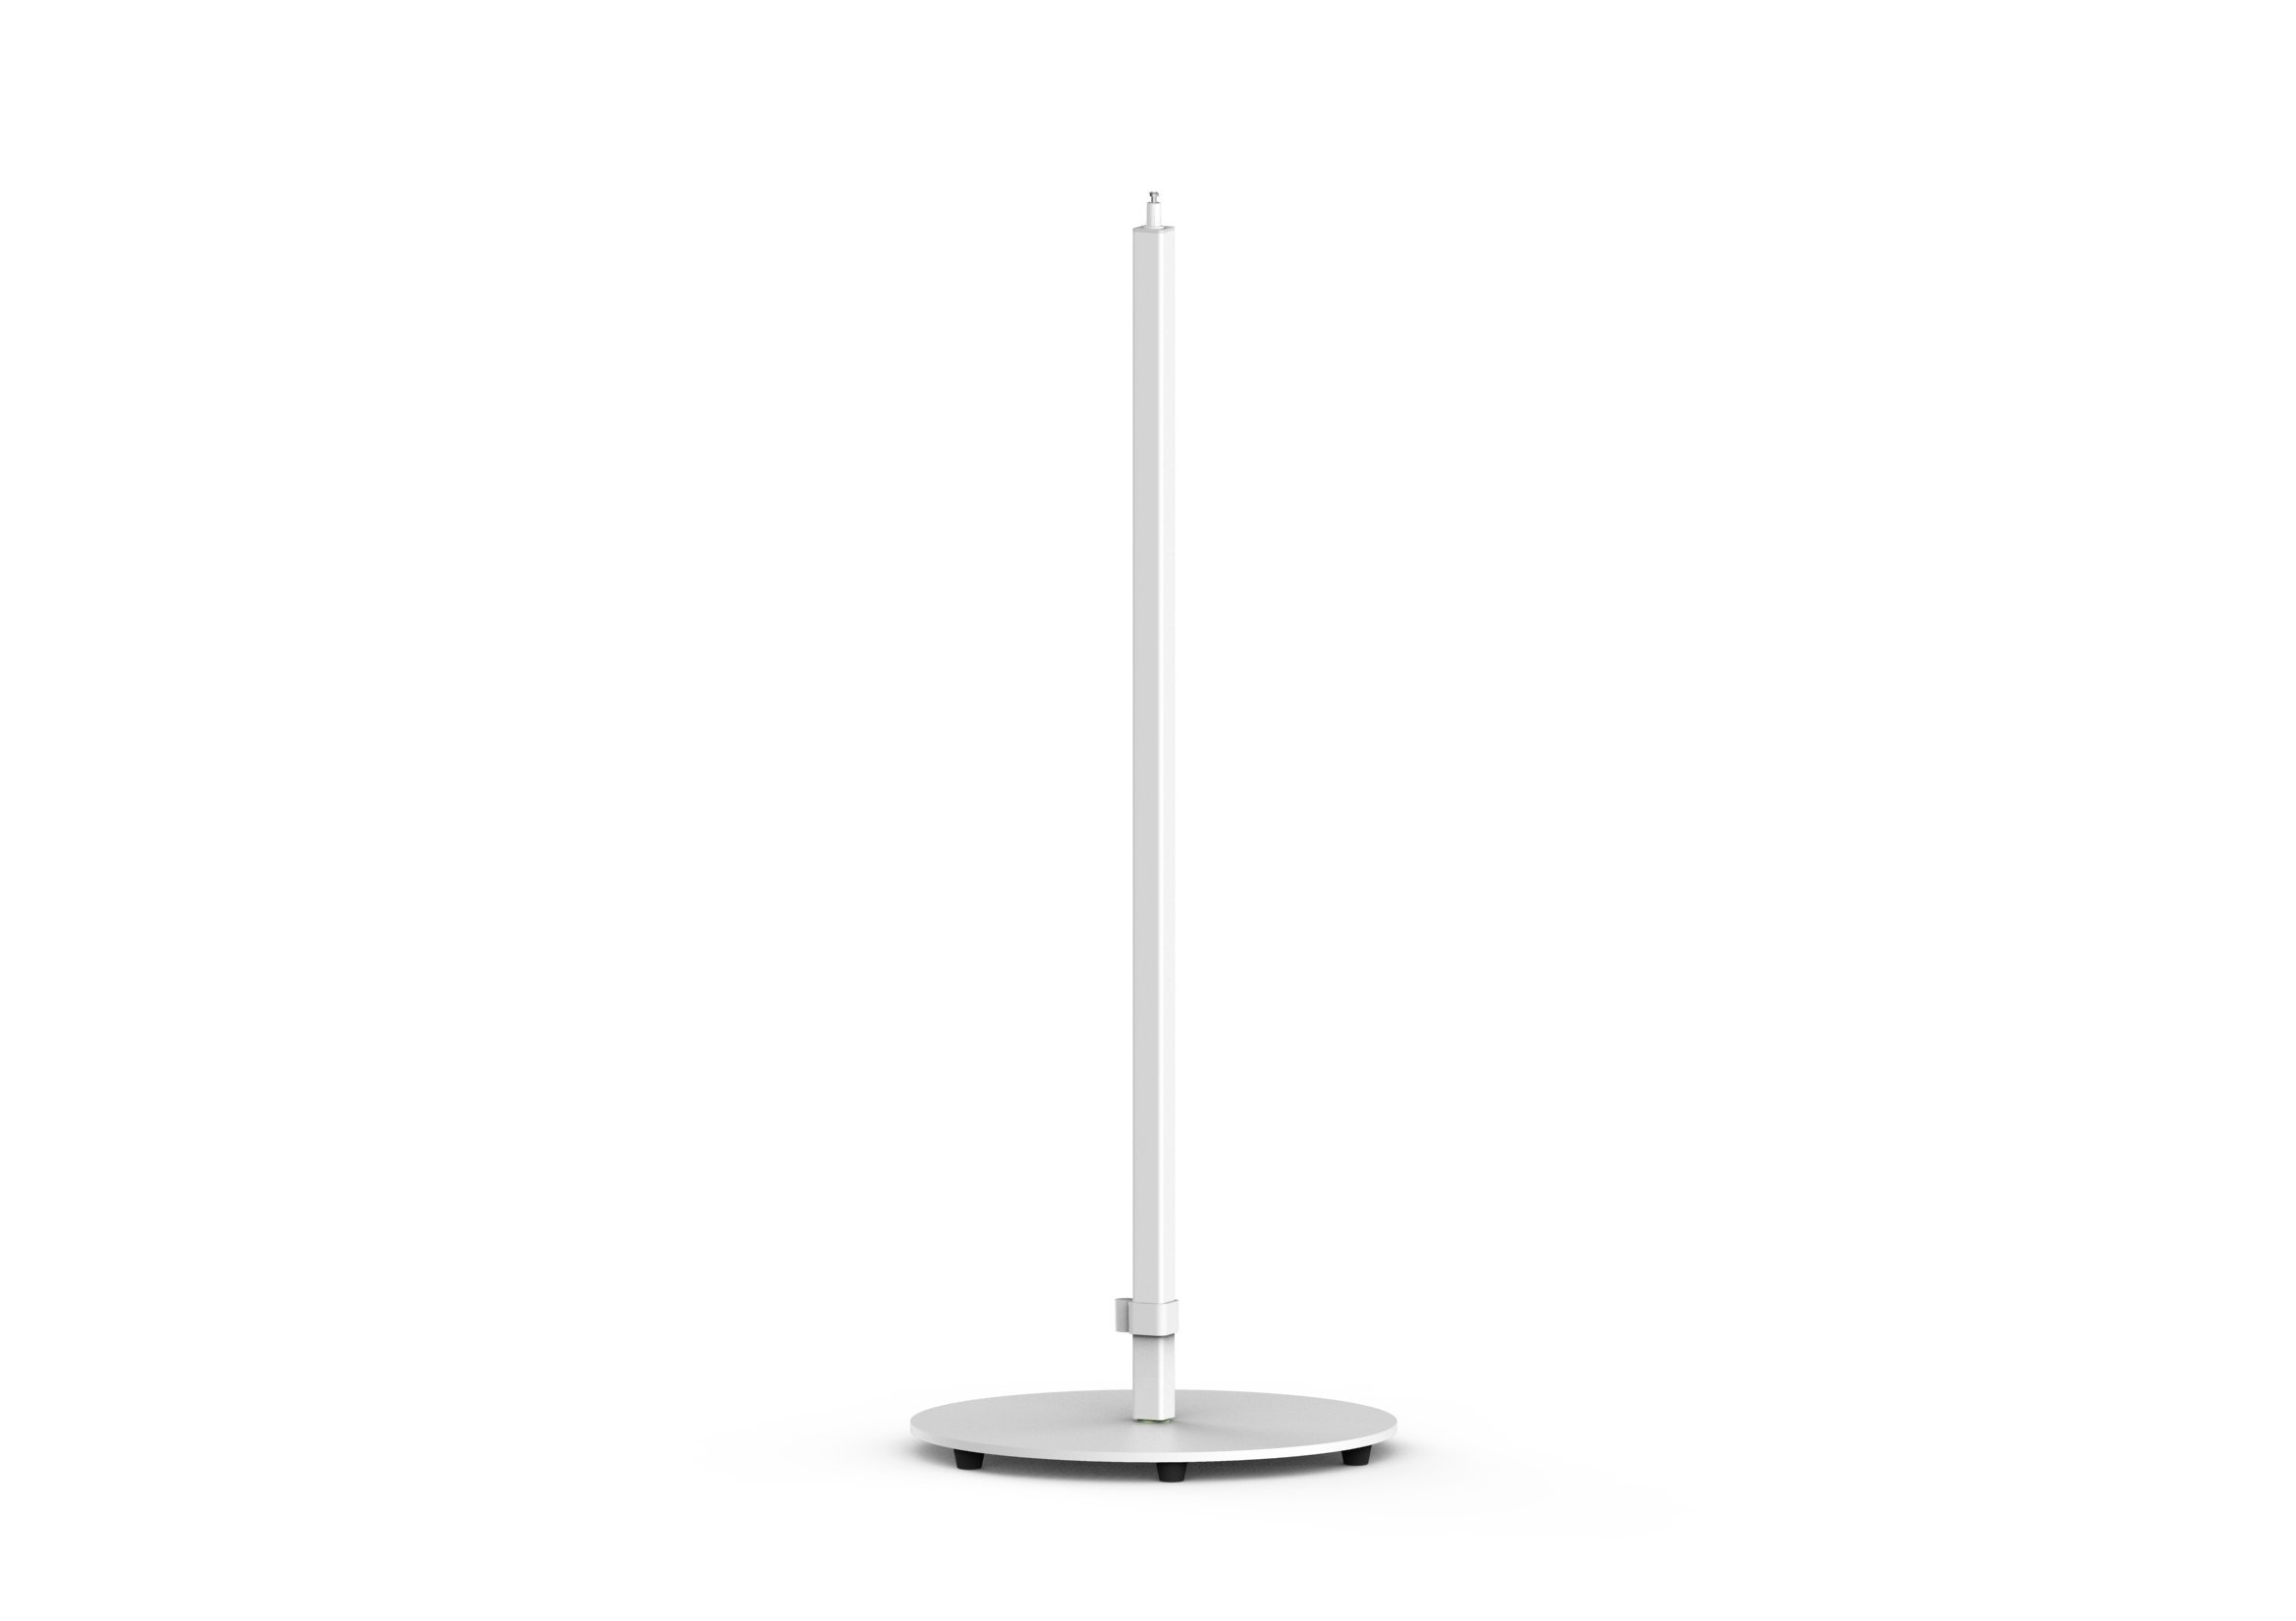 BenQ Floor Stand Extension Accessory for BenQ e-Reading Lamp - White